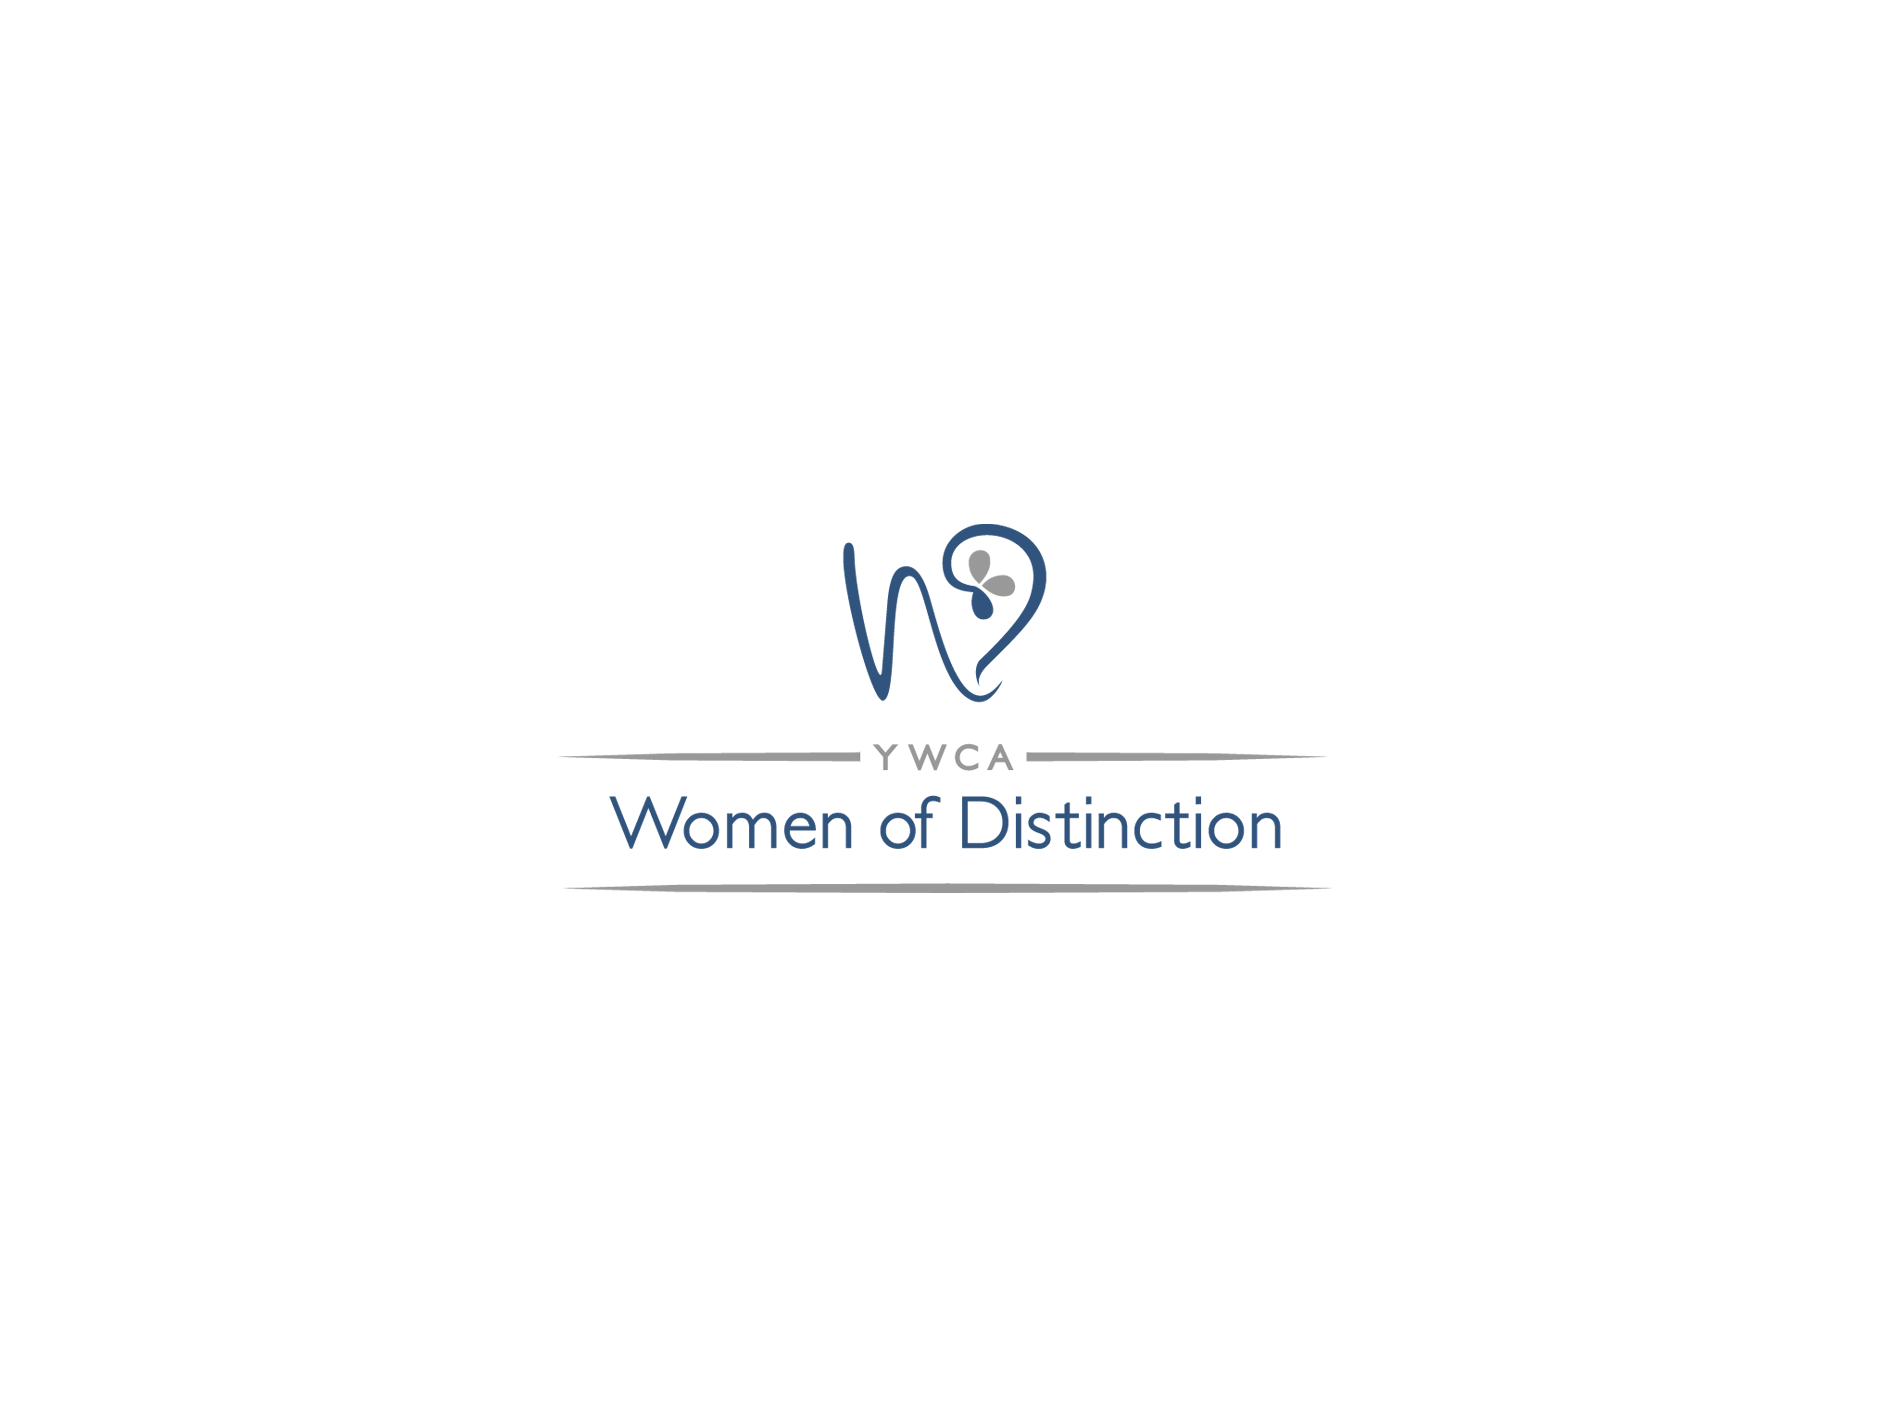 Help Women of Distinction with a new logo [style guide provided]